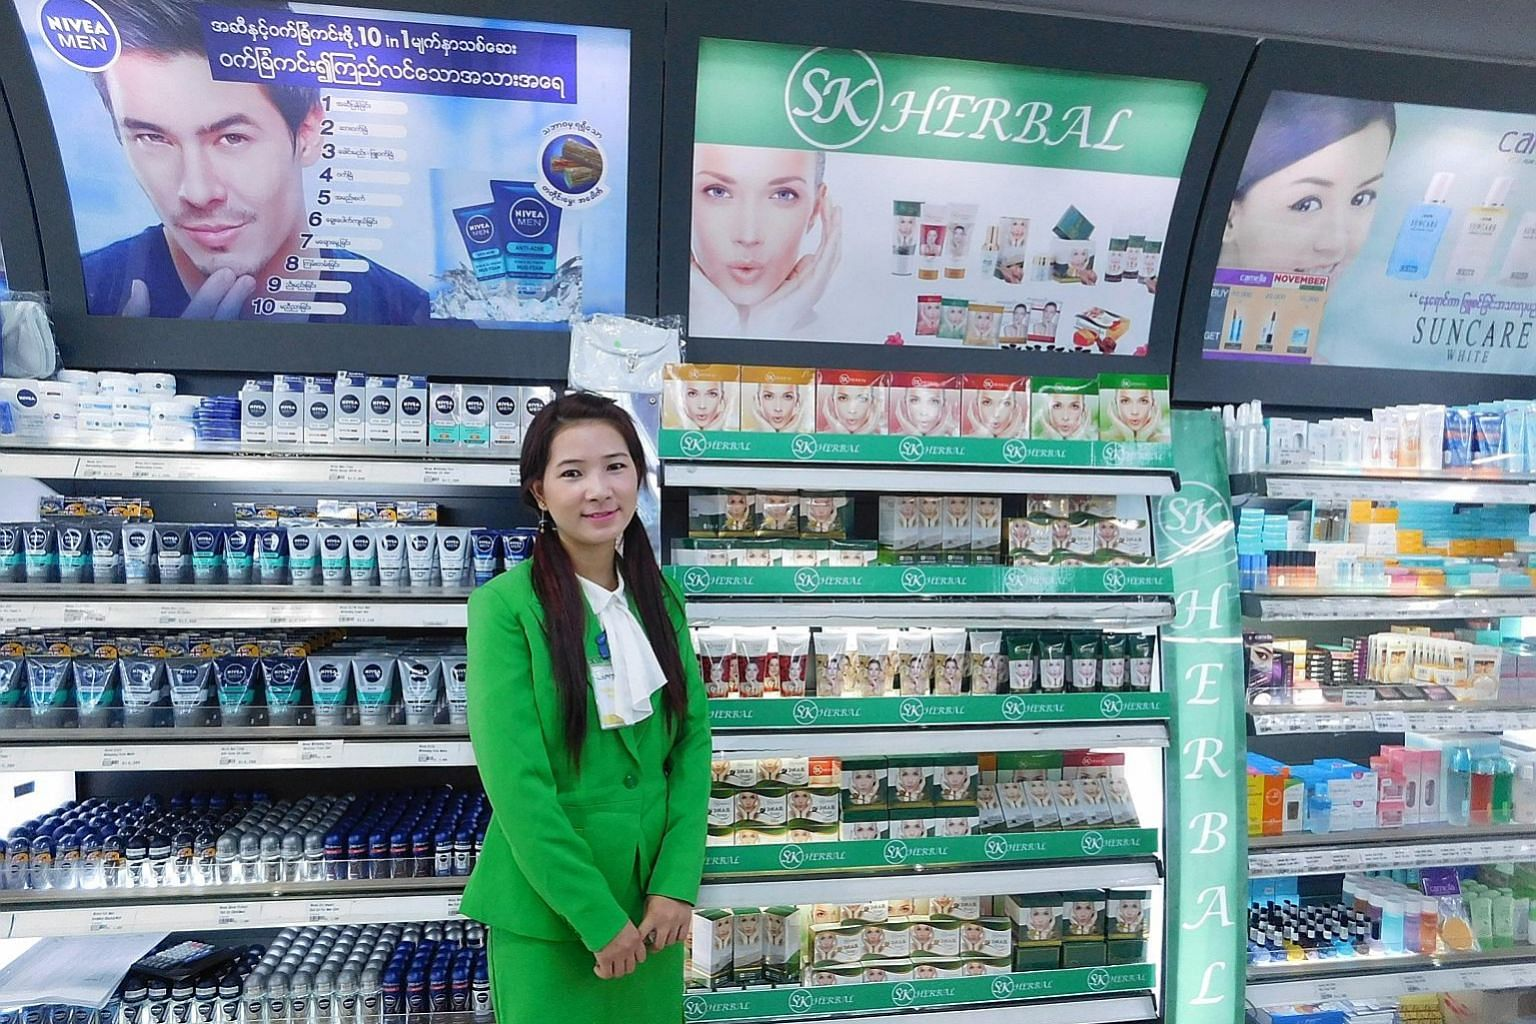 Ms Somsavath Khemsuliyajack wants to expand distribution of her SK Herbal brand of cosmetics throughout Asean by the end of next year. SK Herbal's cosmetics on display in Myanmar. The brand has become recognised in the country and its products are so